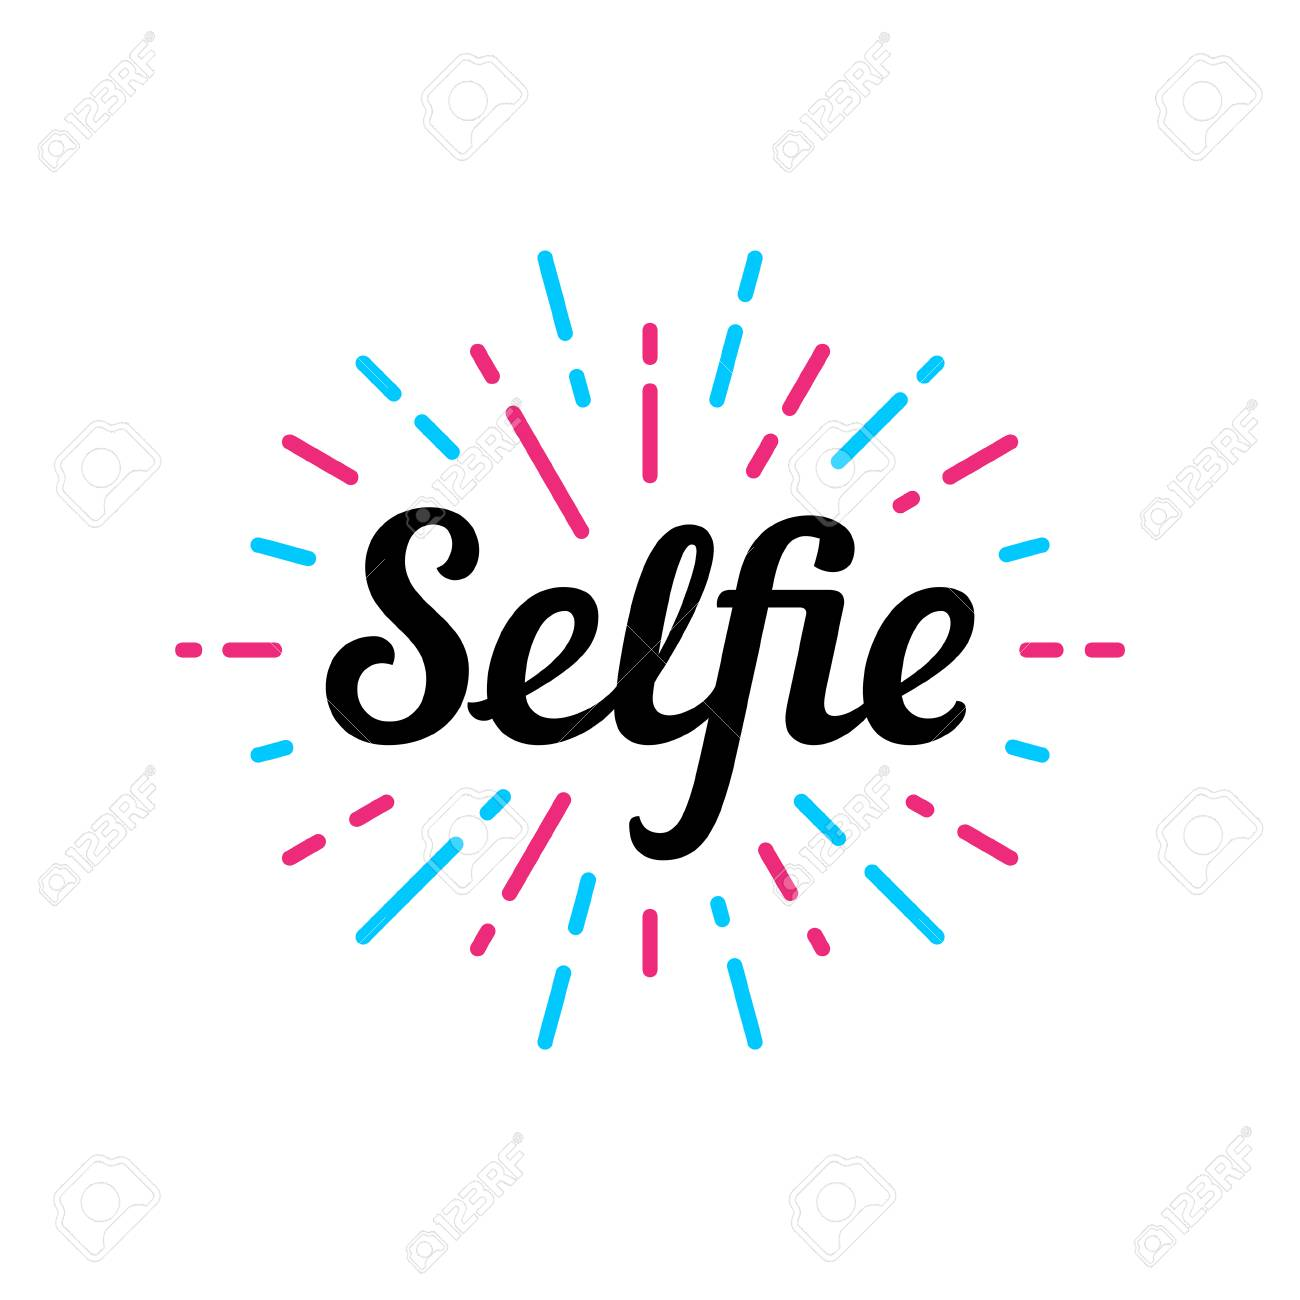 selfie logo design template vector color illustration selfie